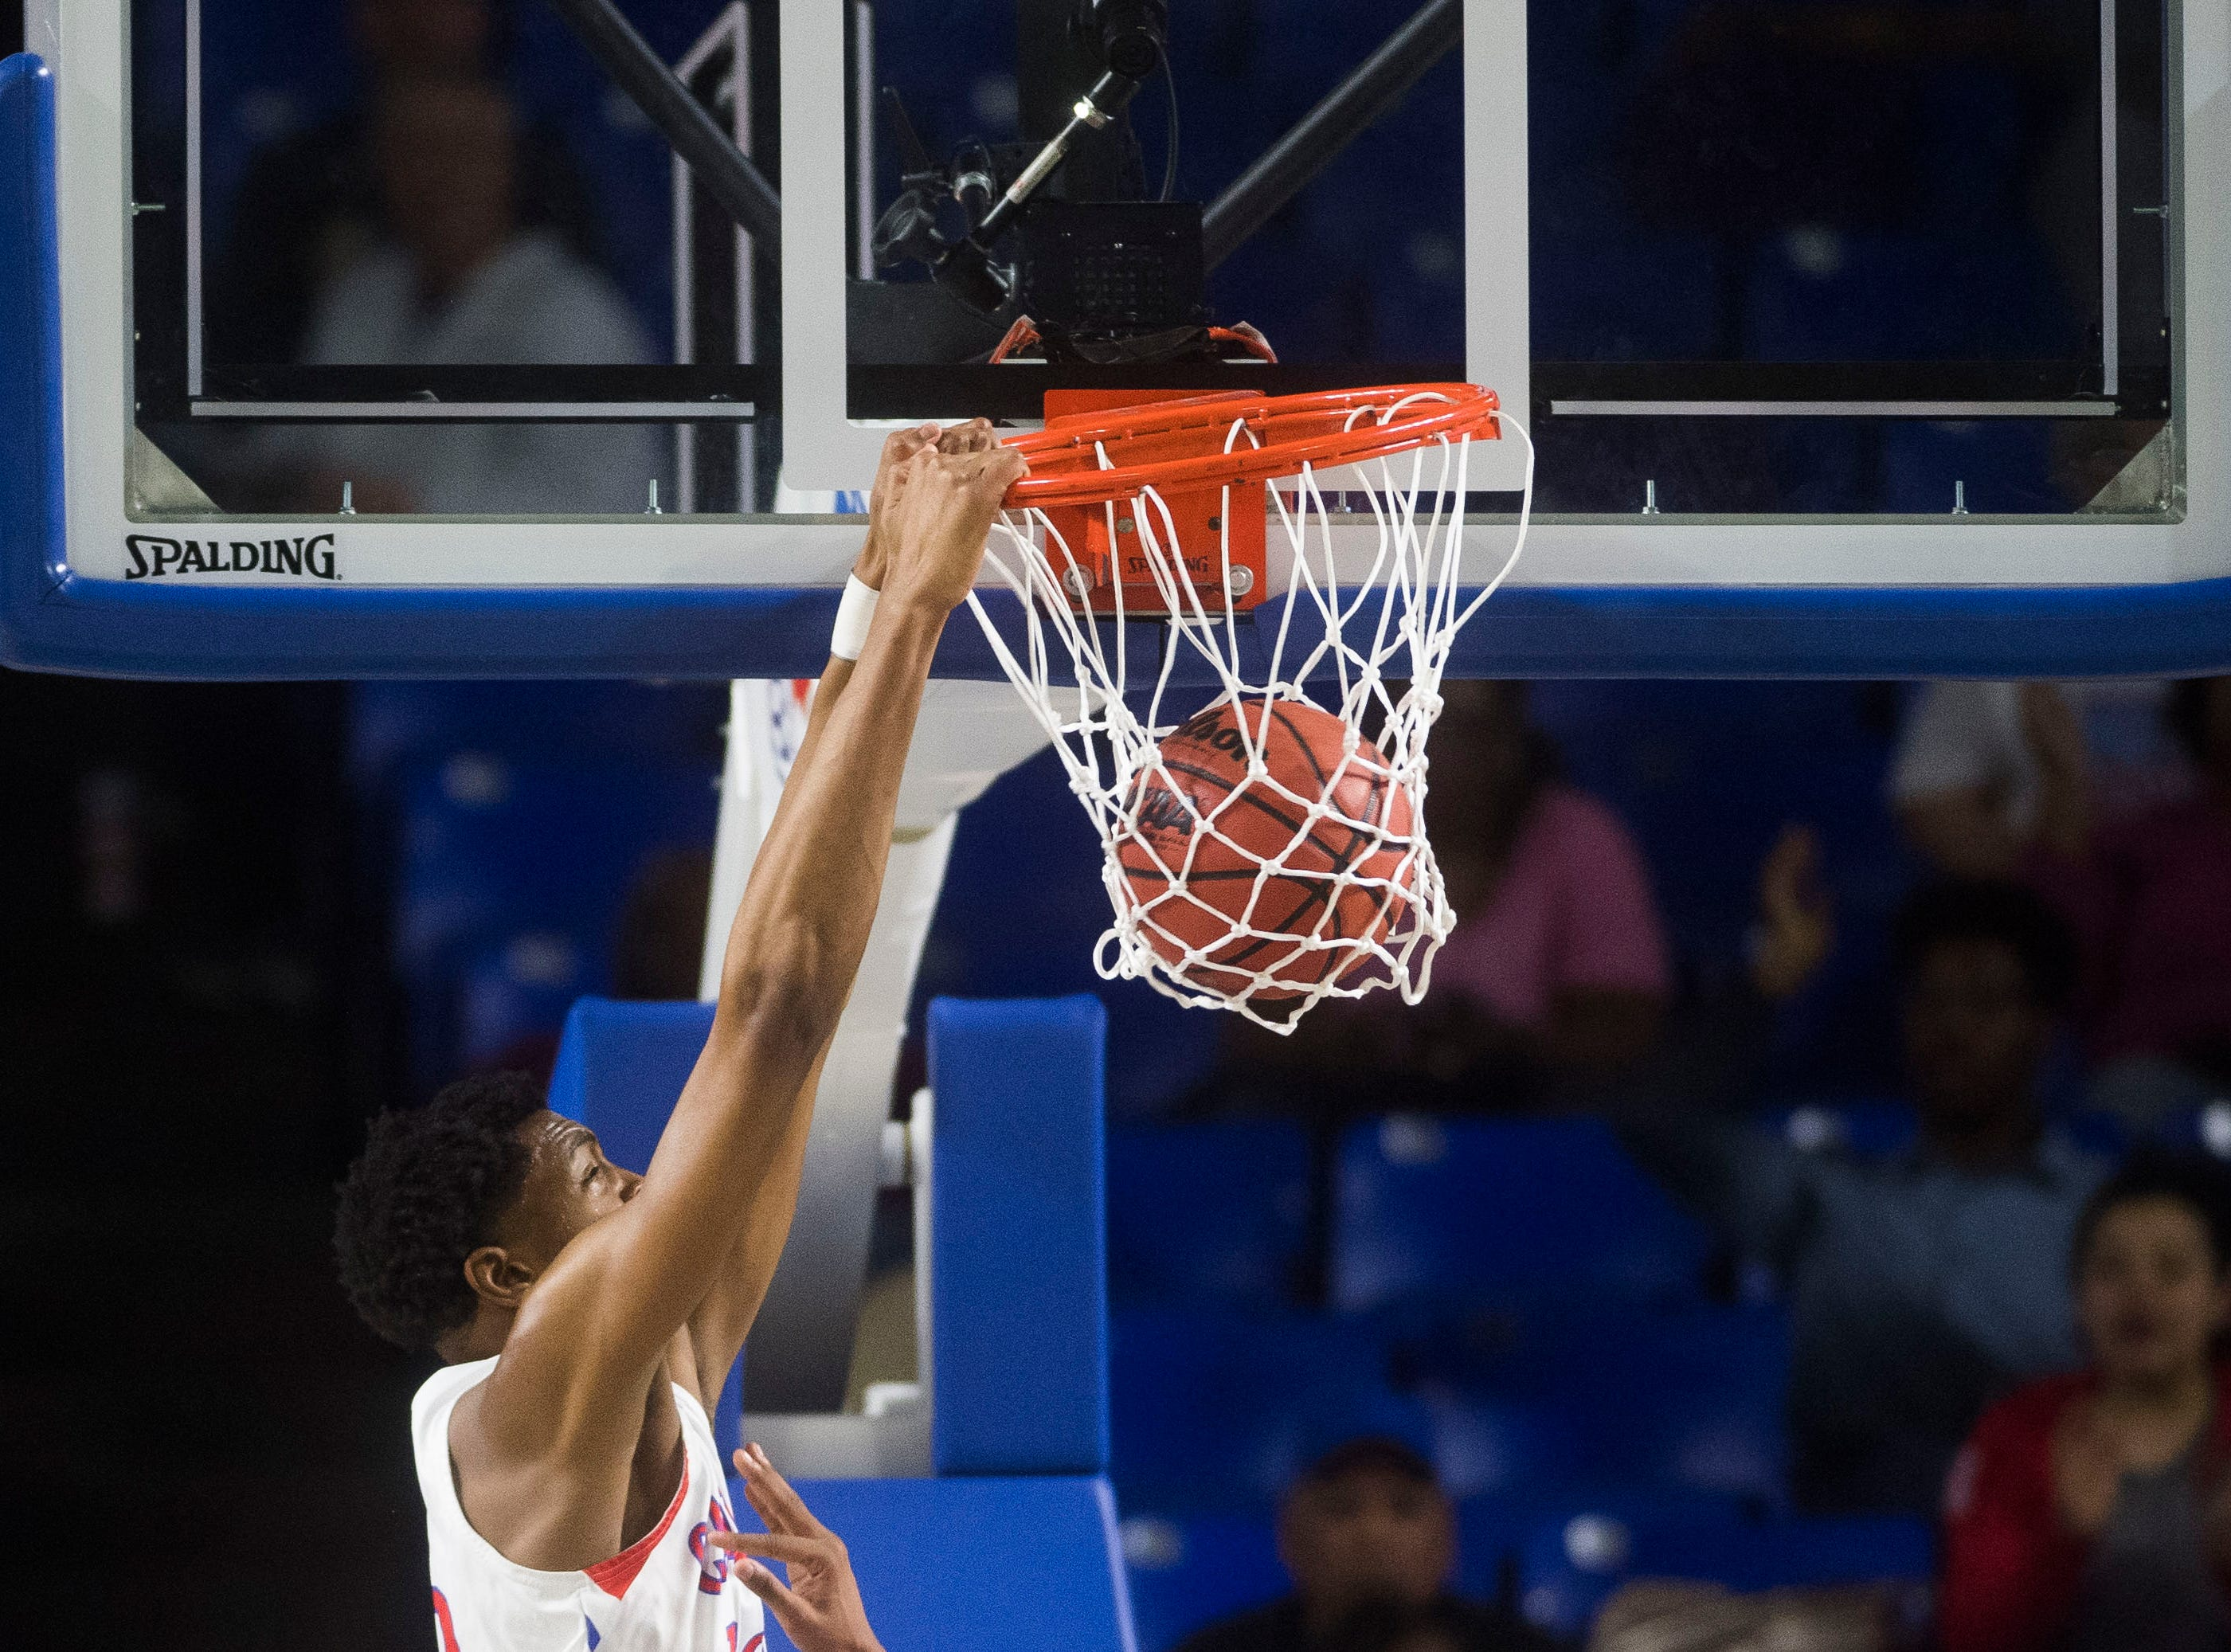 Wooddale's Chandler Lawson (13) dunks the ball during a TSSAA AA state quarterfinal game between Austin-East and Wooddale at the Murphy Center in Murfreesboro, Wednesday, March 13, 2019.